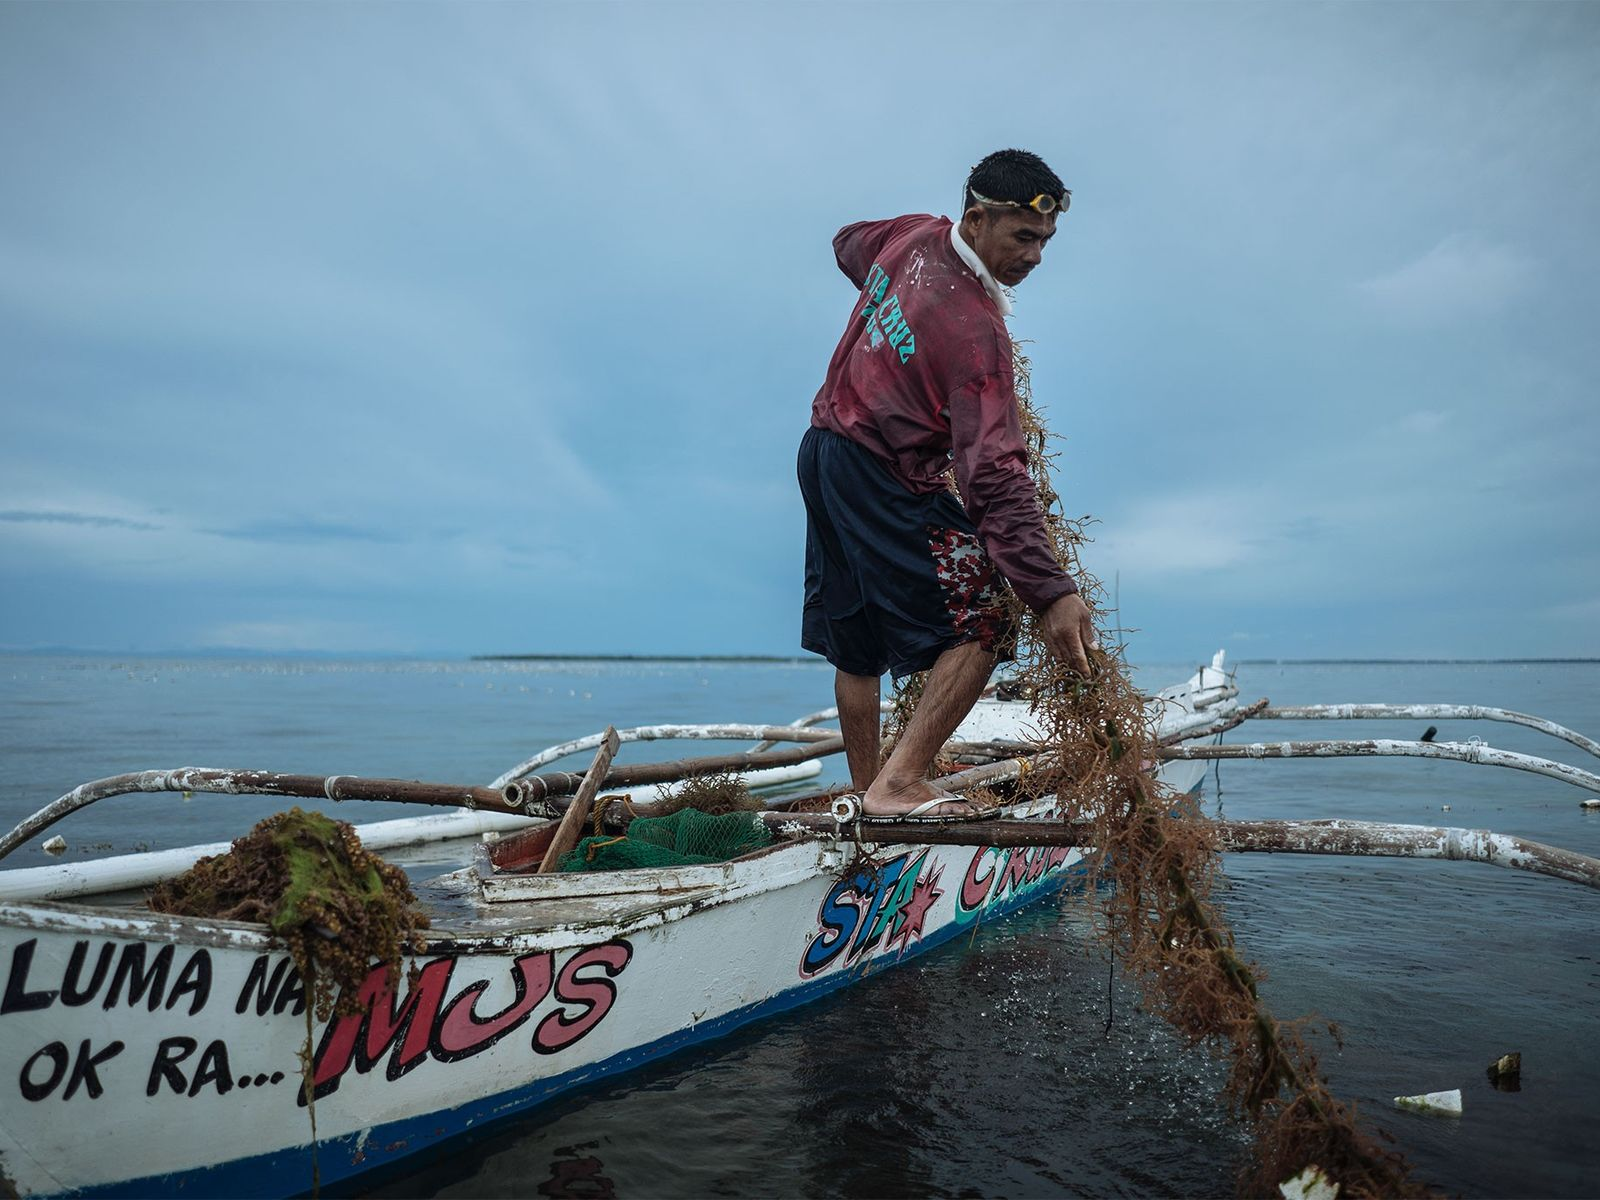 Seaweed is another product harvested locally, which also depends on ocean health.